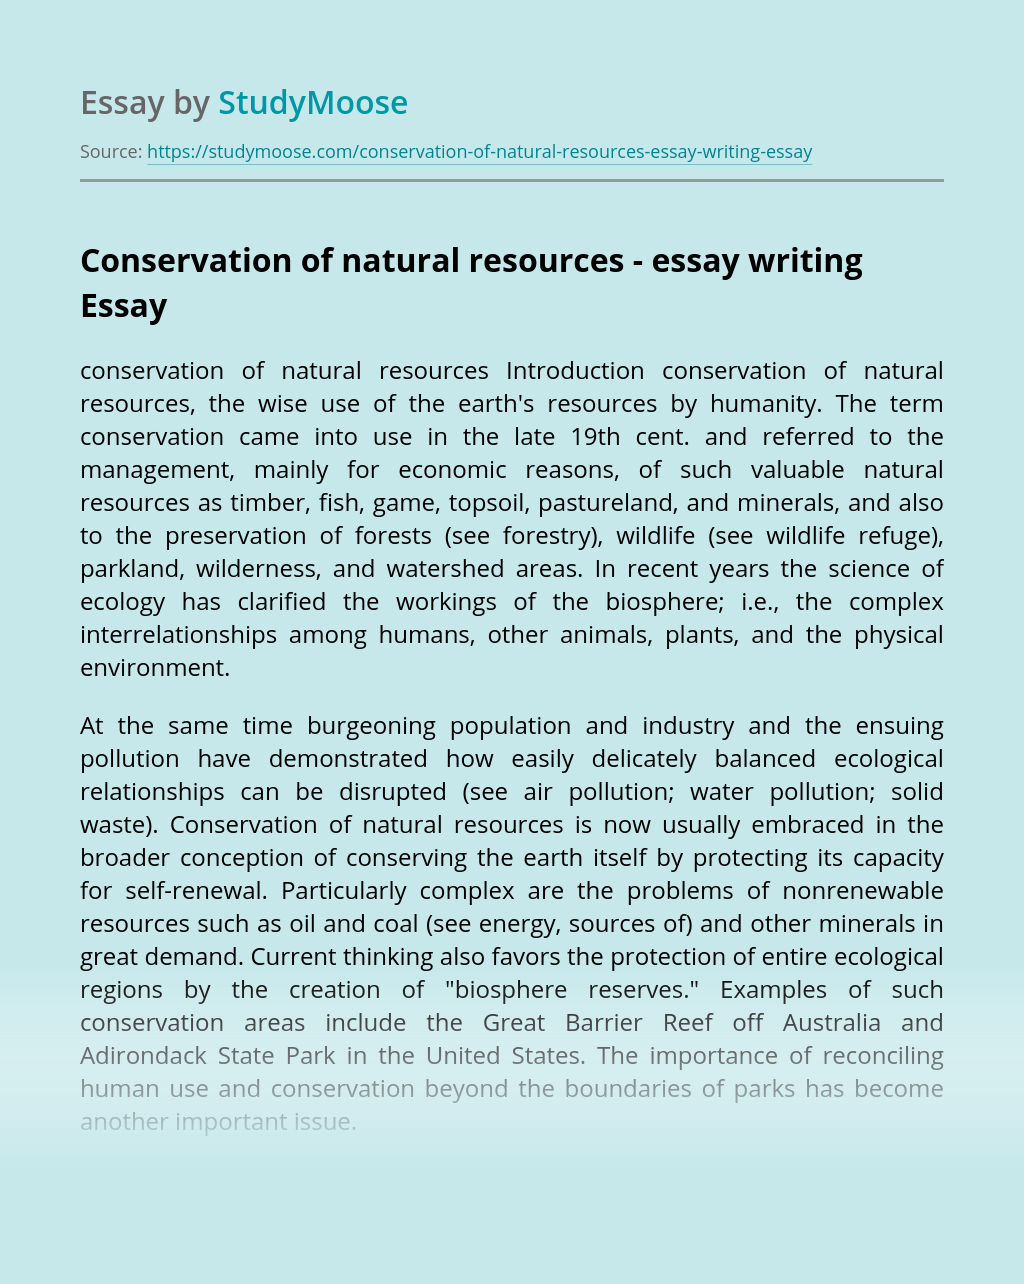 Conservation of natural resources - essay writing